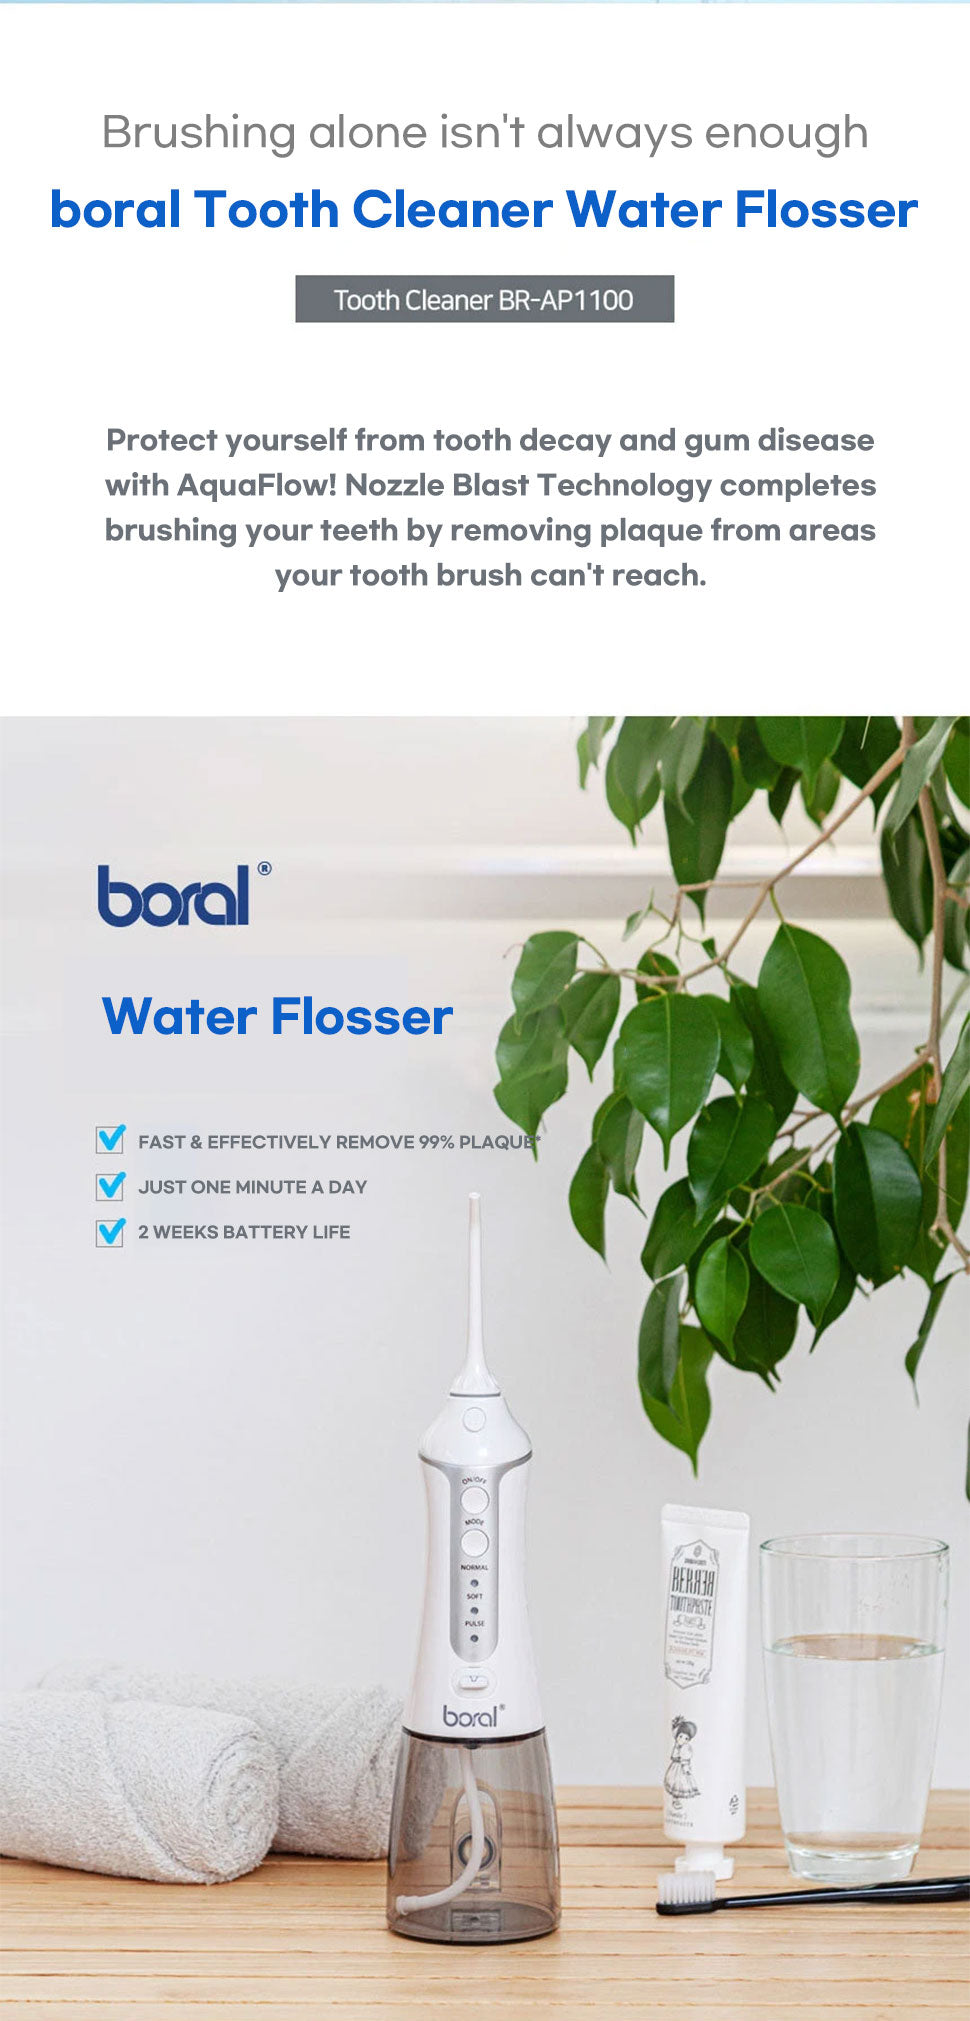 boral tooth cleaner water flossor brush mouth health australia korea shopping